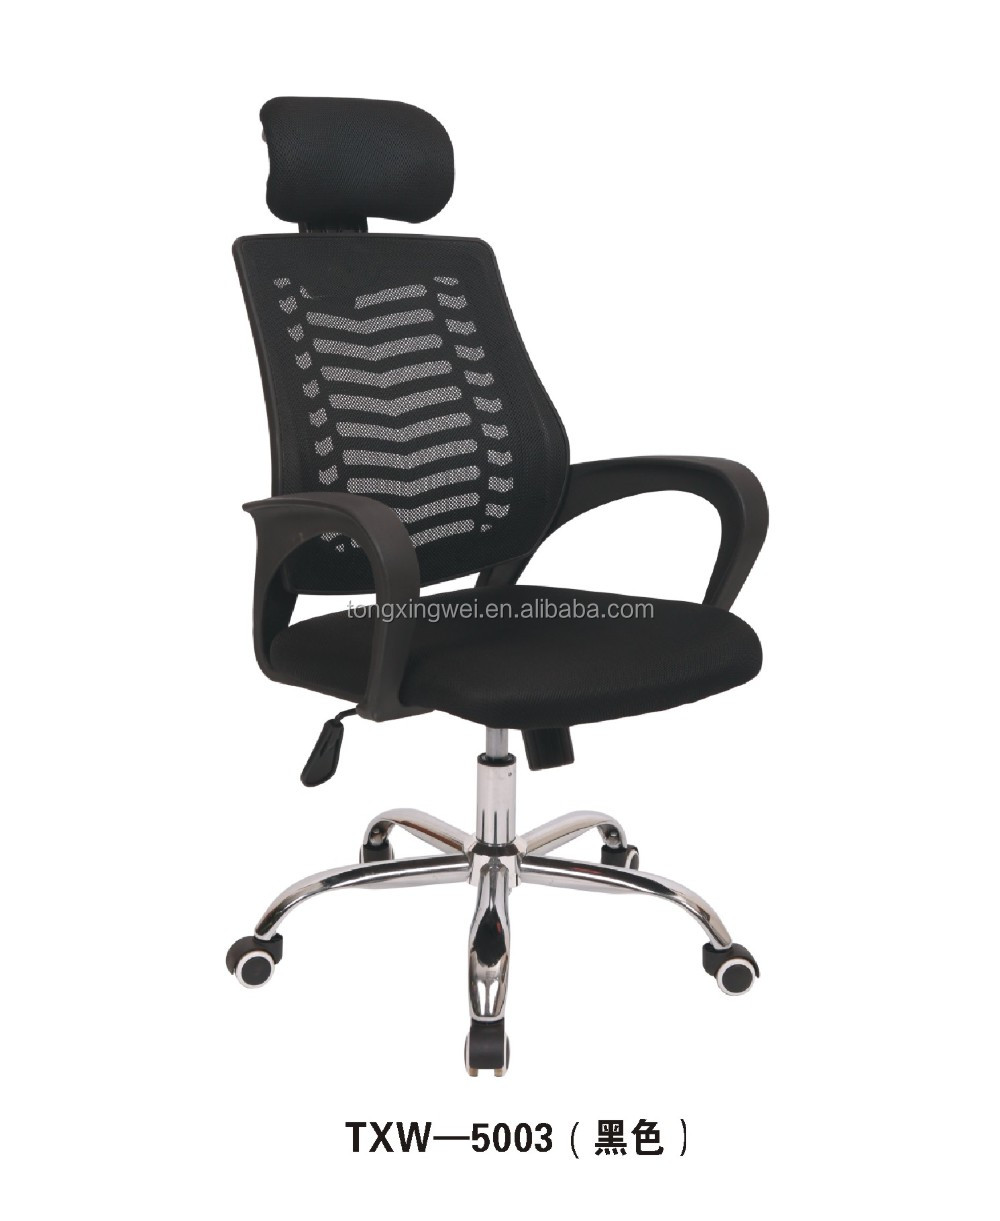 New arrival swivel office chair computer chair ergonomic mesh chair TXW-5003